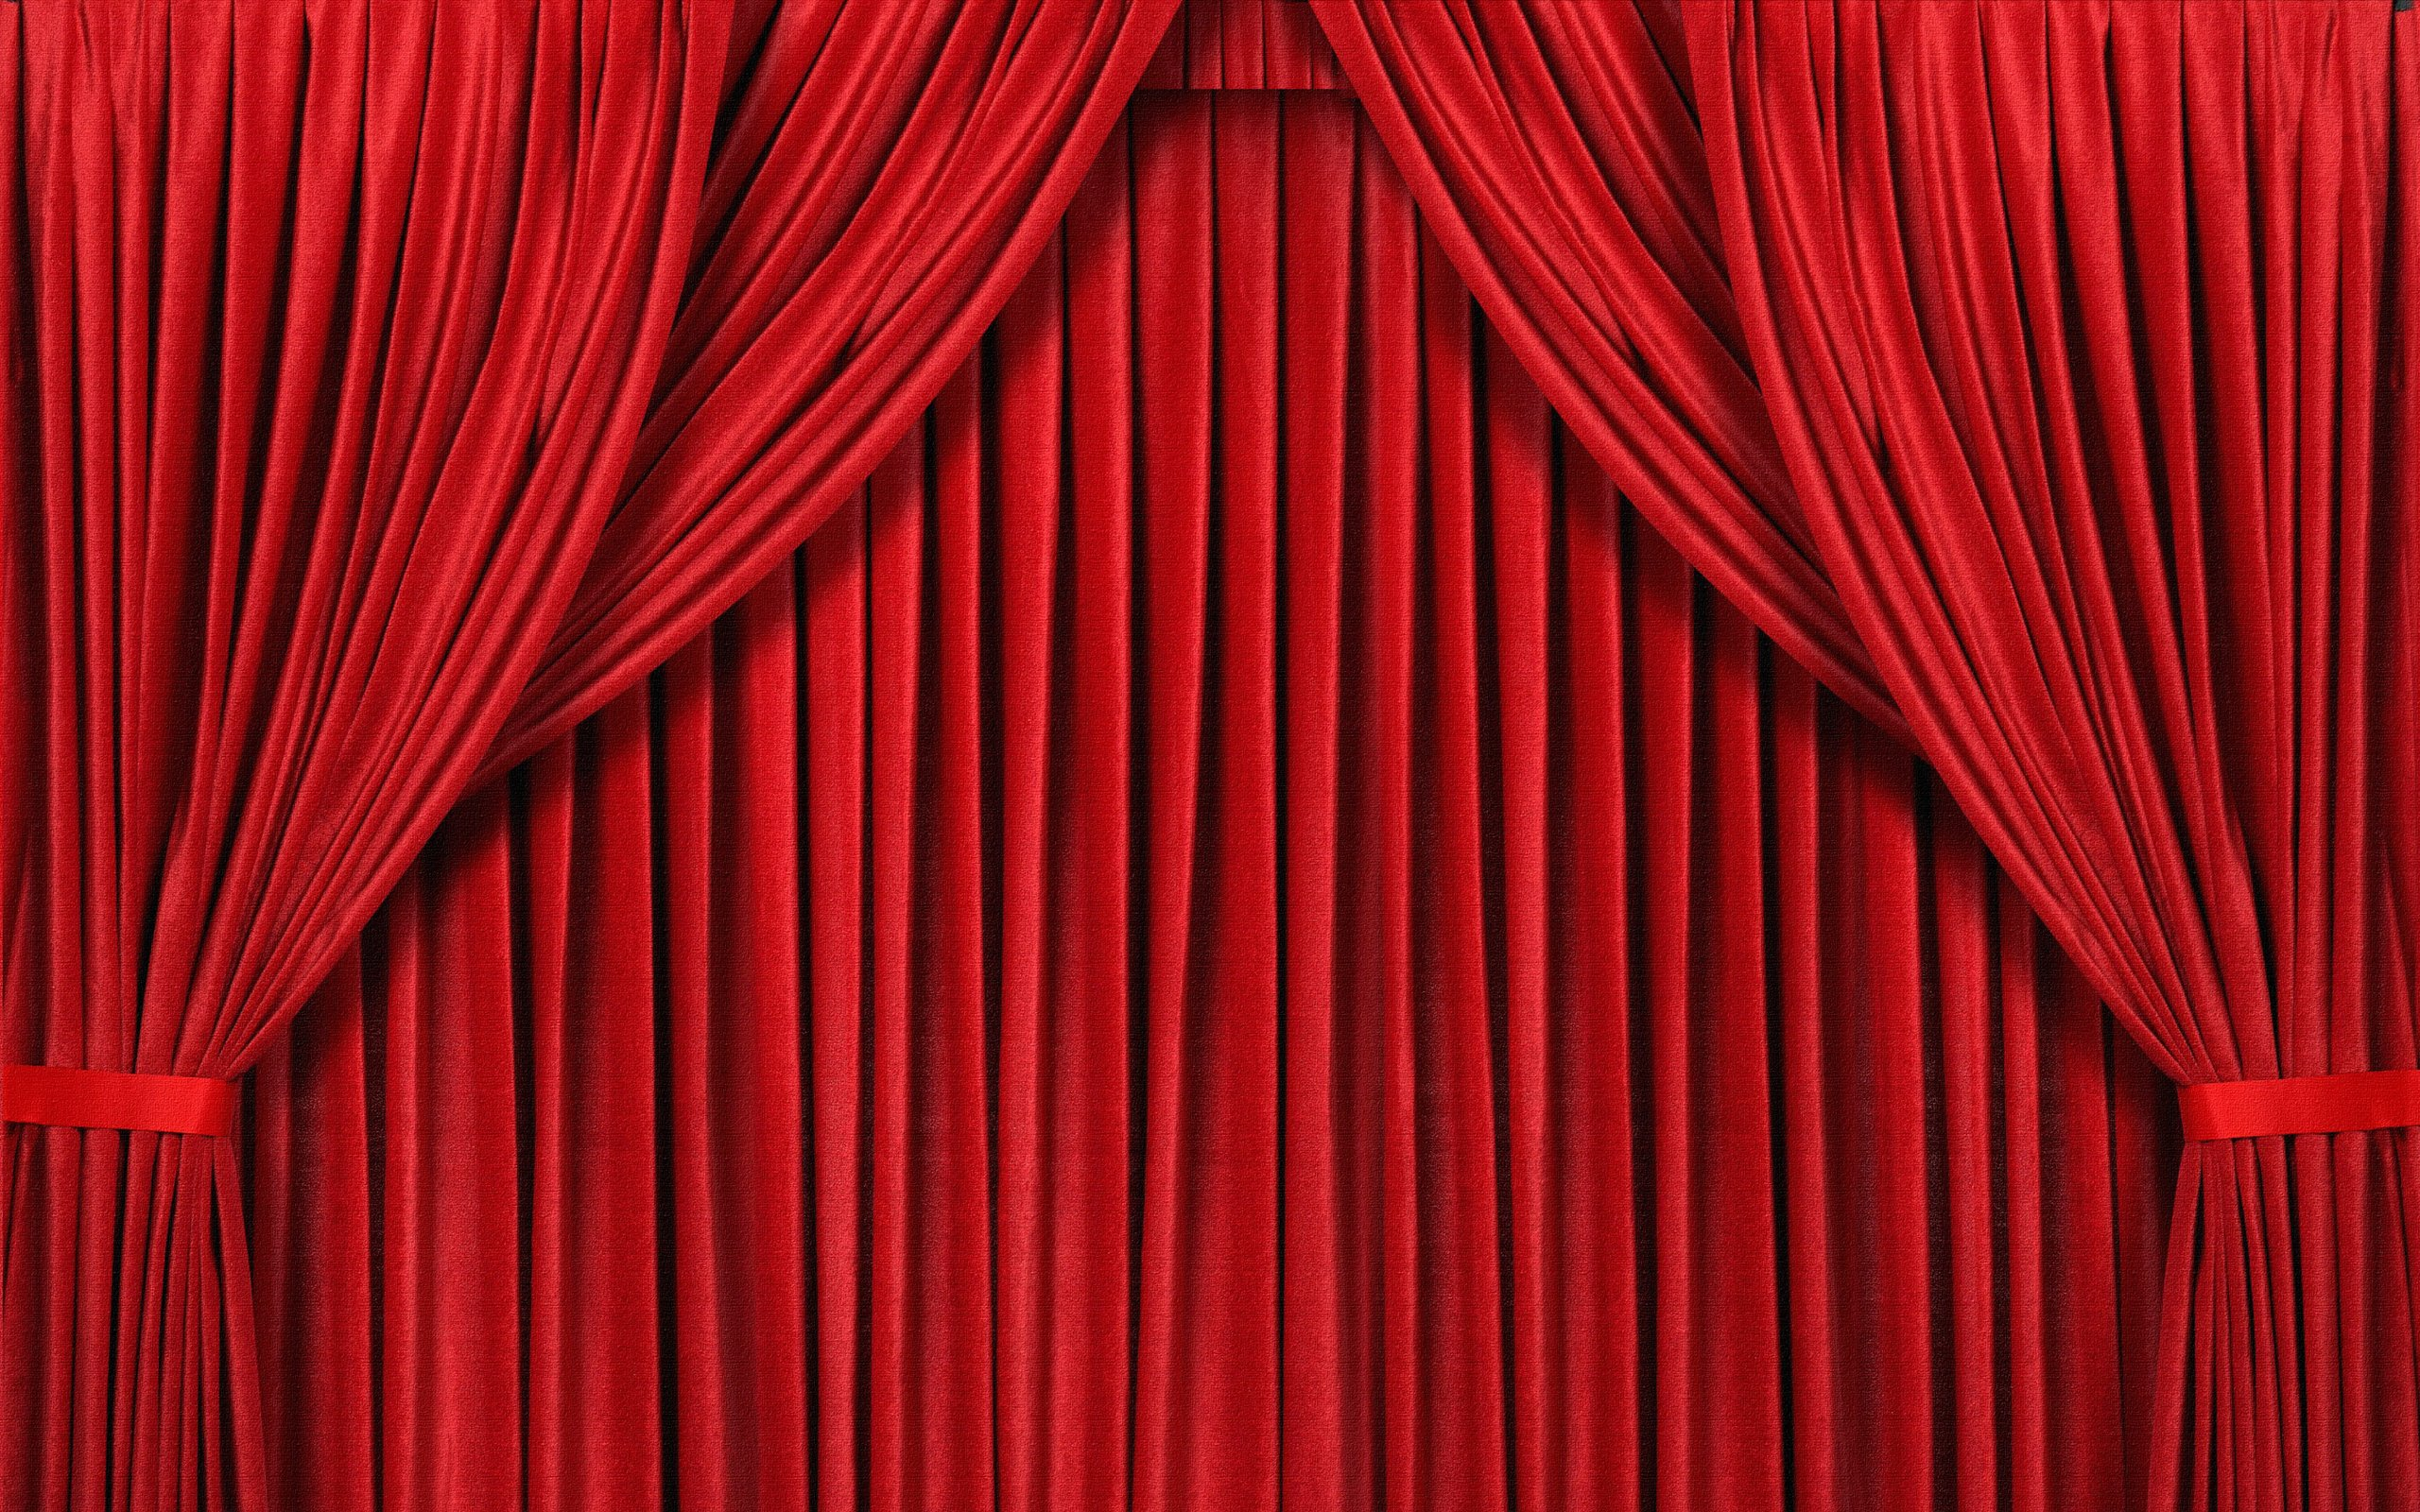 cartoon red curtains wallpaper - photo #19